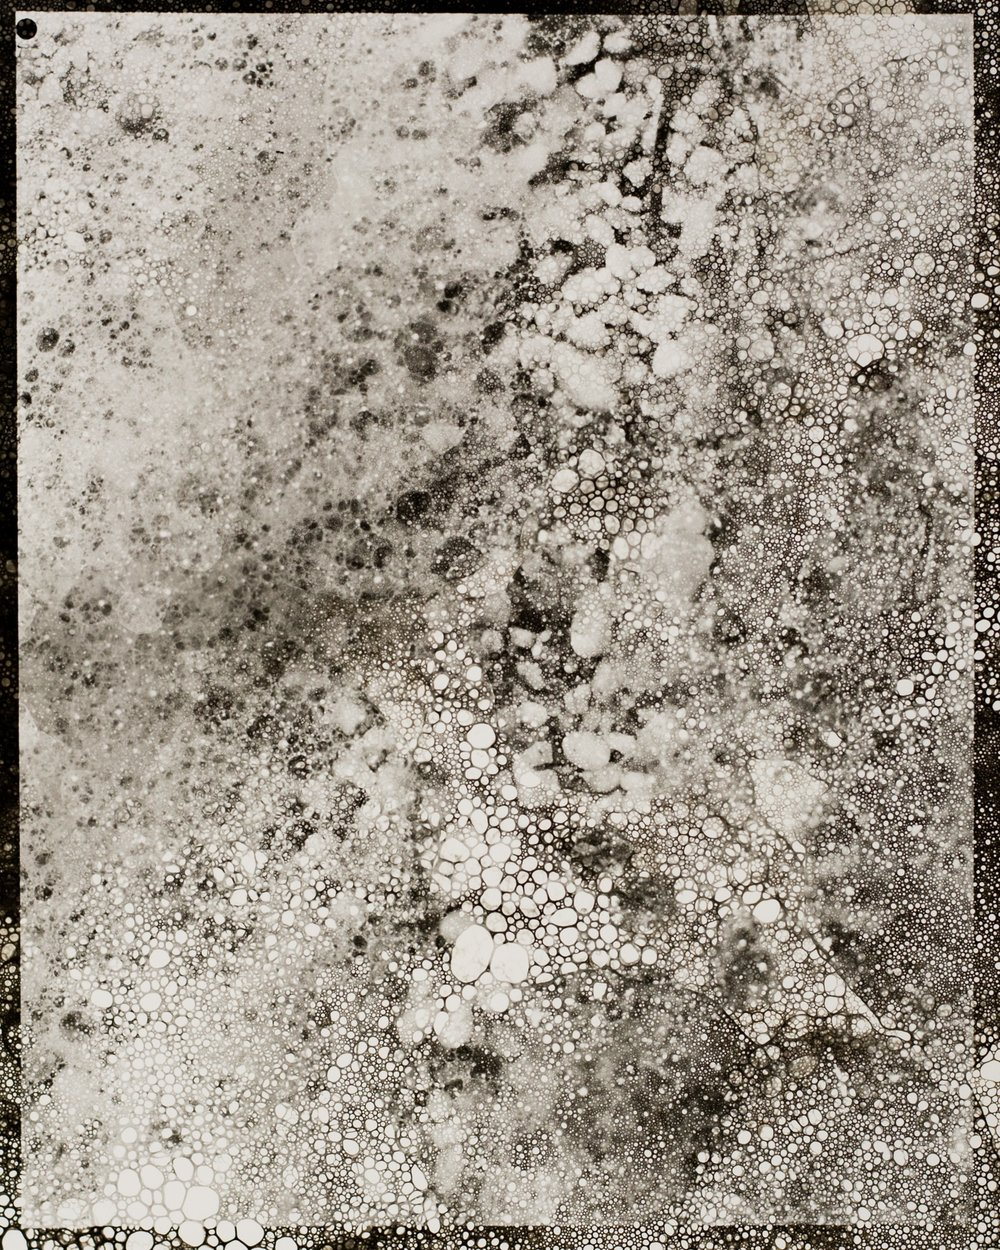 Ocean Abstraction 6.28.2017, Unique Silver Gelatin Print, 10 x 8 inches